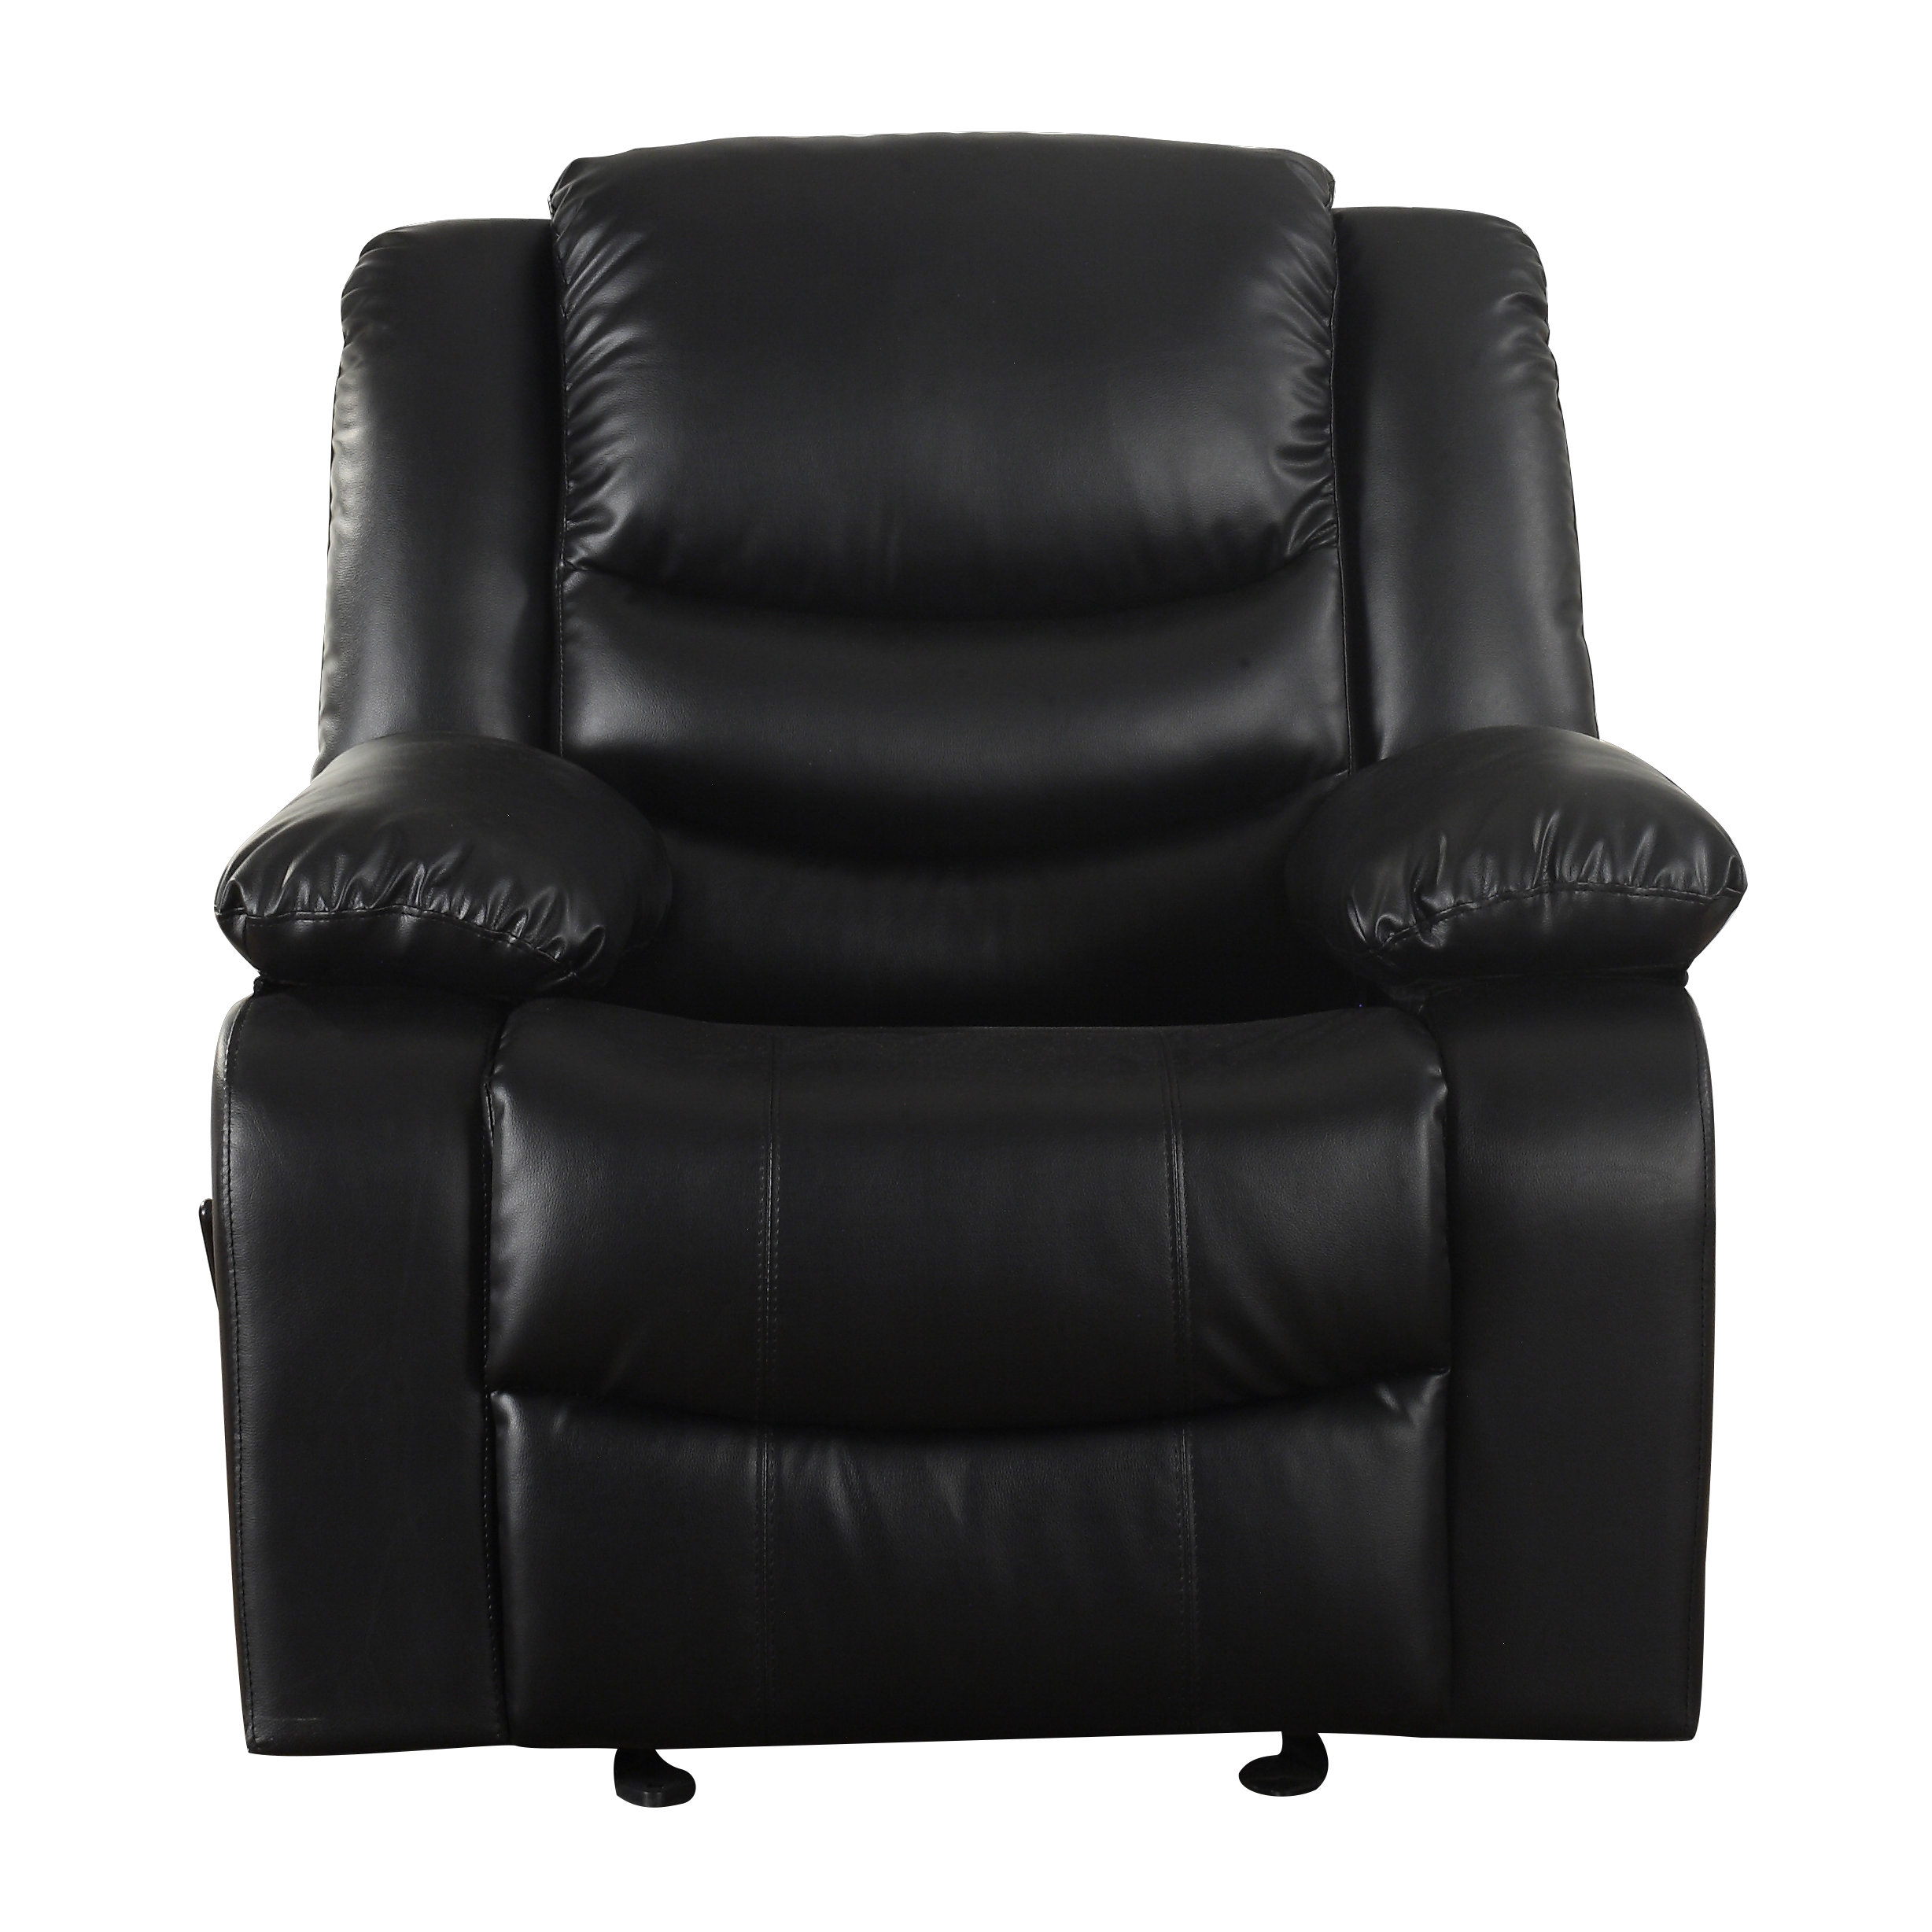 Madison Home Usa Classic Overstuffed Manual Rocker Recliner Regarding Dale Iii Polyurethane Swivel Glider Recliners (View 13 of 25)